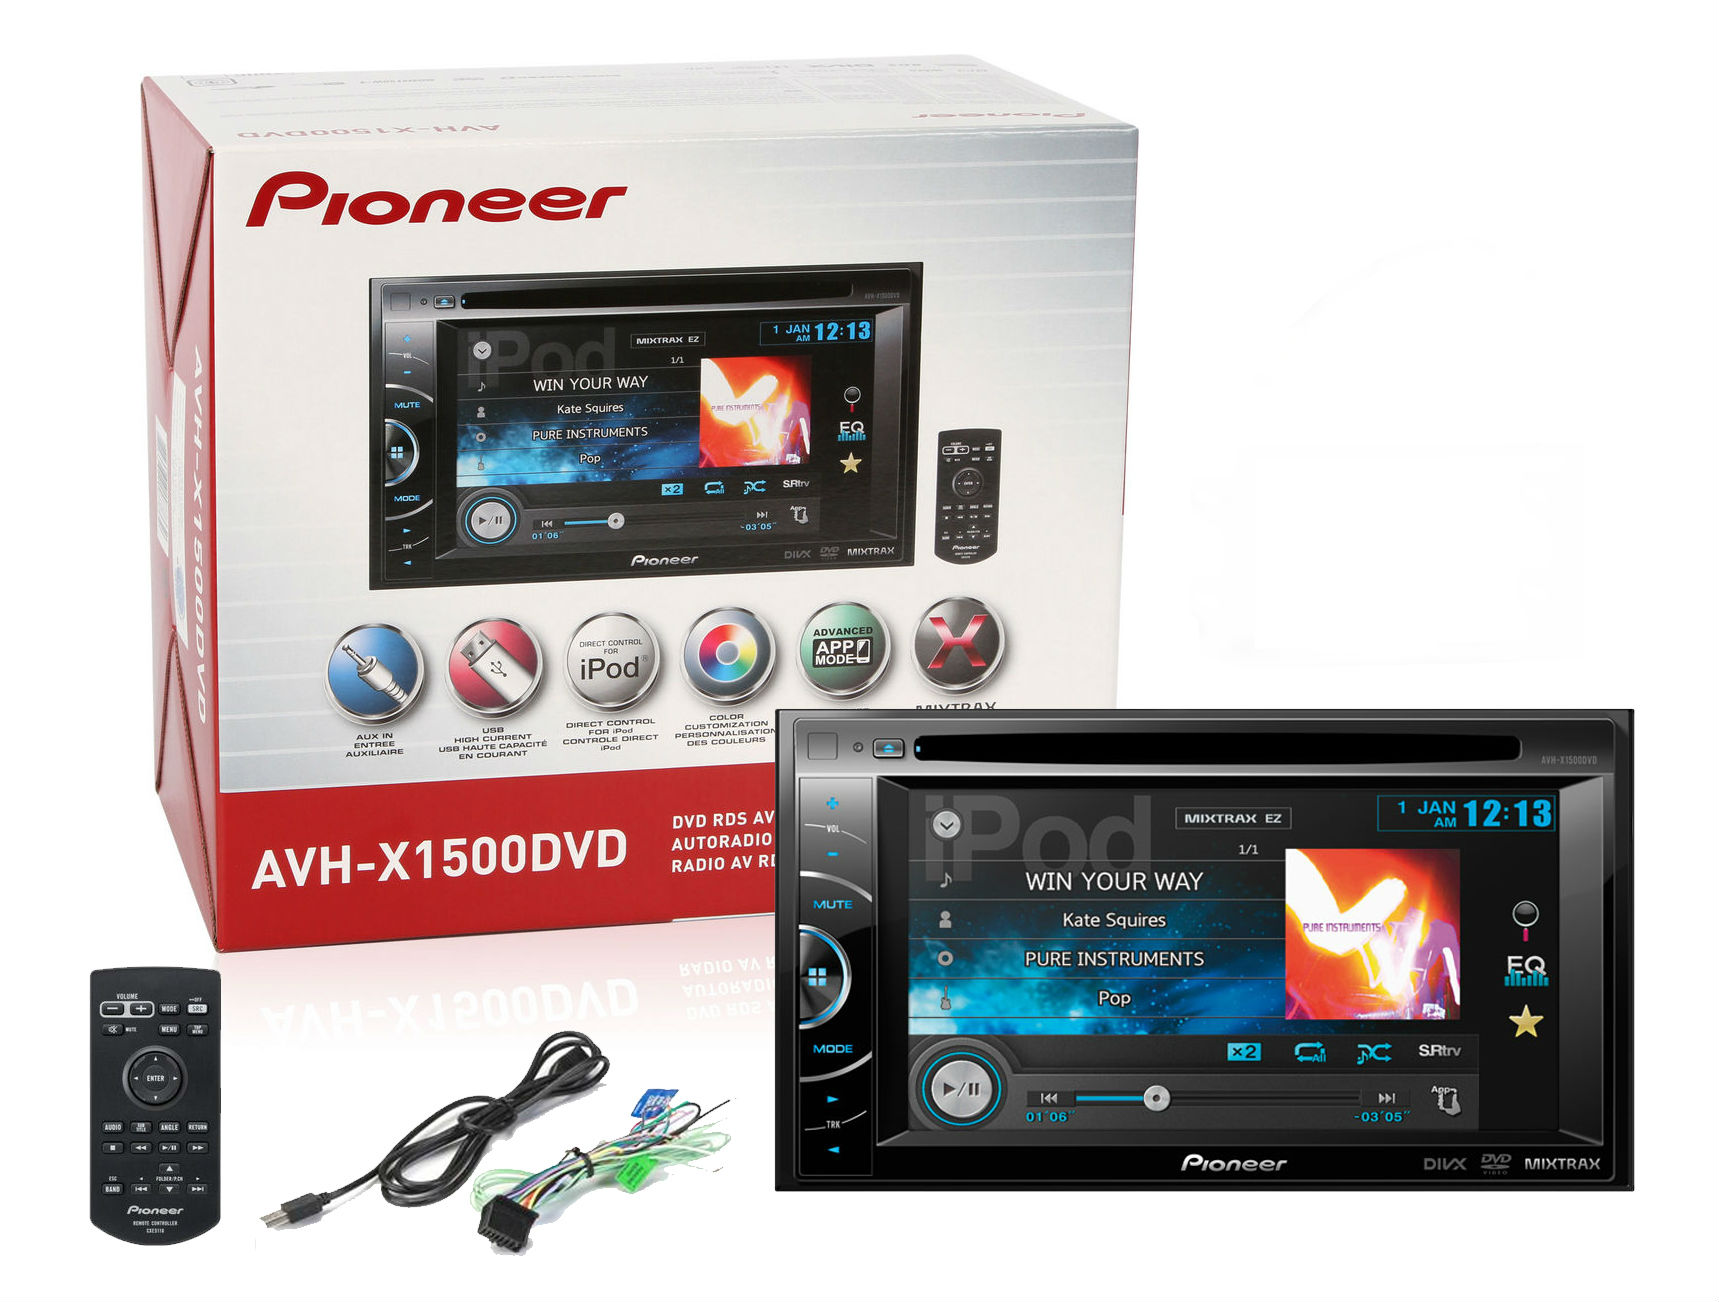 Hvac Systems For Dummies likewise Pioneer Deh P6900ub Wiring Diagram also Wiring Diagram Pioneer Avh X1500 Dvd additionally Pioneer Avh P3200bt Wiring Diagram as well Pioneer Avh P5100dvd Wiring Diagram. on pioneer avh p5700dvd wiring diagram